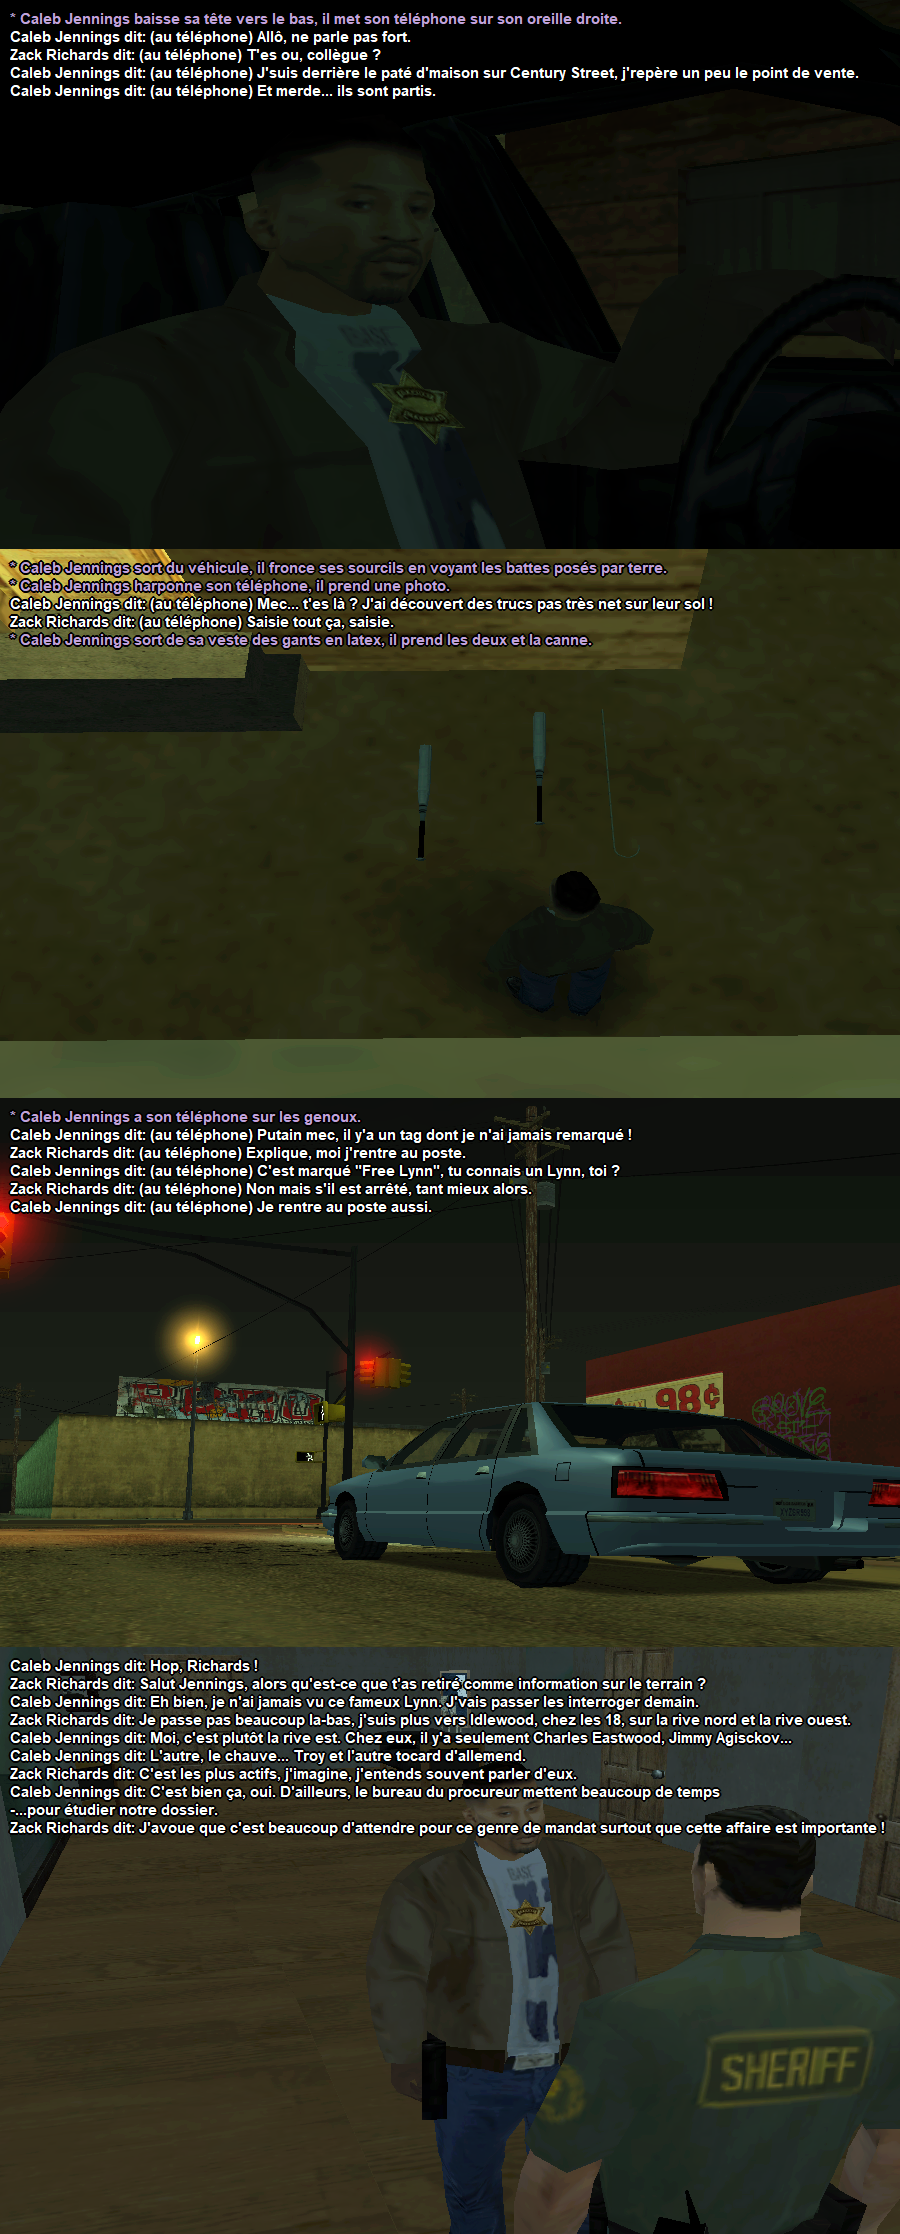 Los Santos Sheriff's Department - A tradition of service (8) - Page 16 1535584672-a